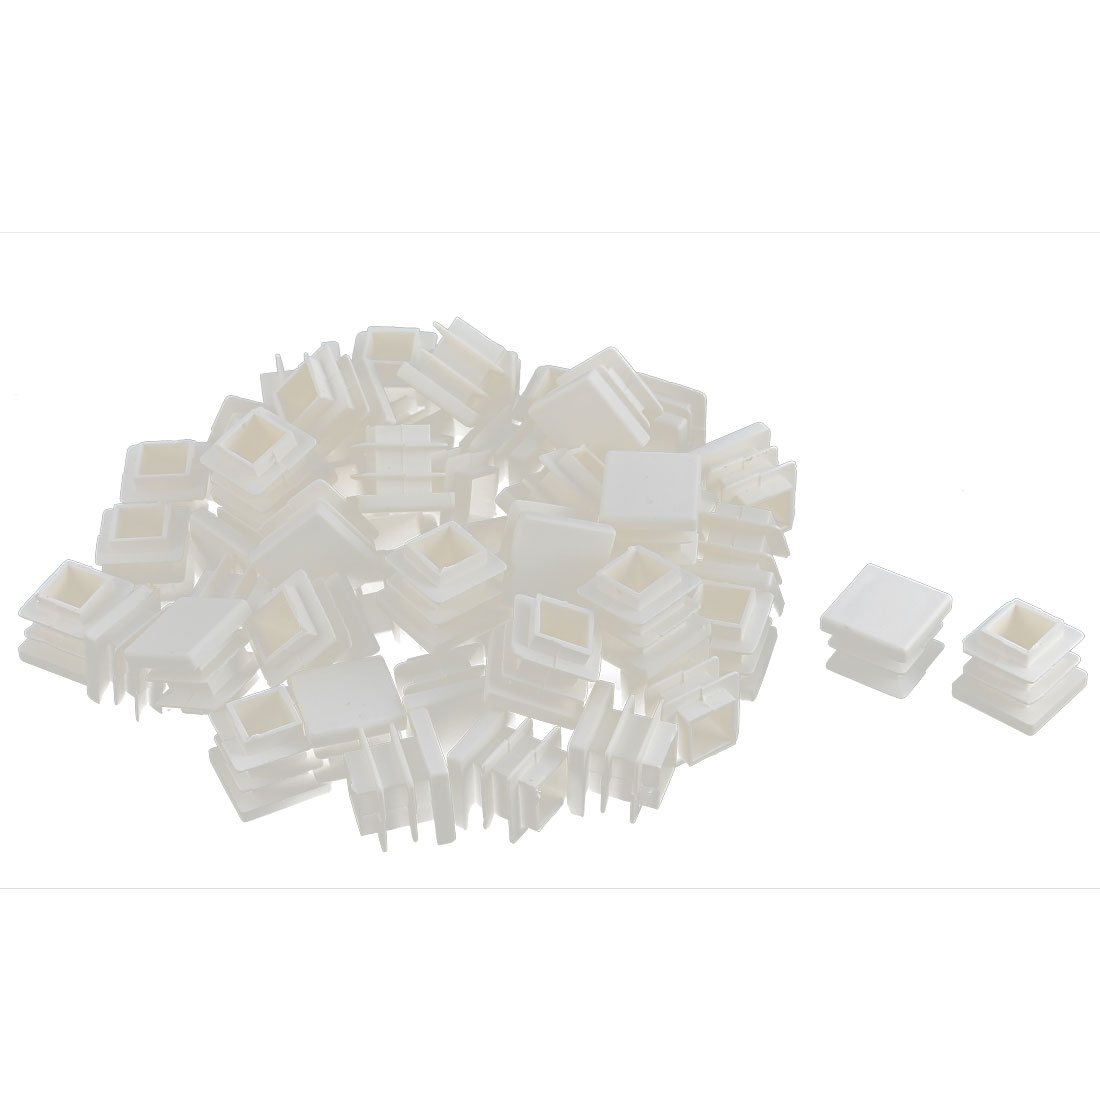 Furniture Desk Chair Legs Plastic Square Tube Pipe Insert Cover End Caps White 16 x 16mm 50pcs